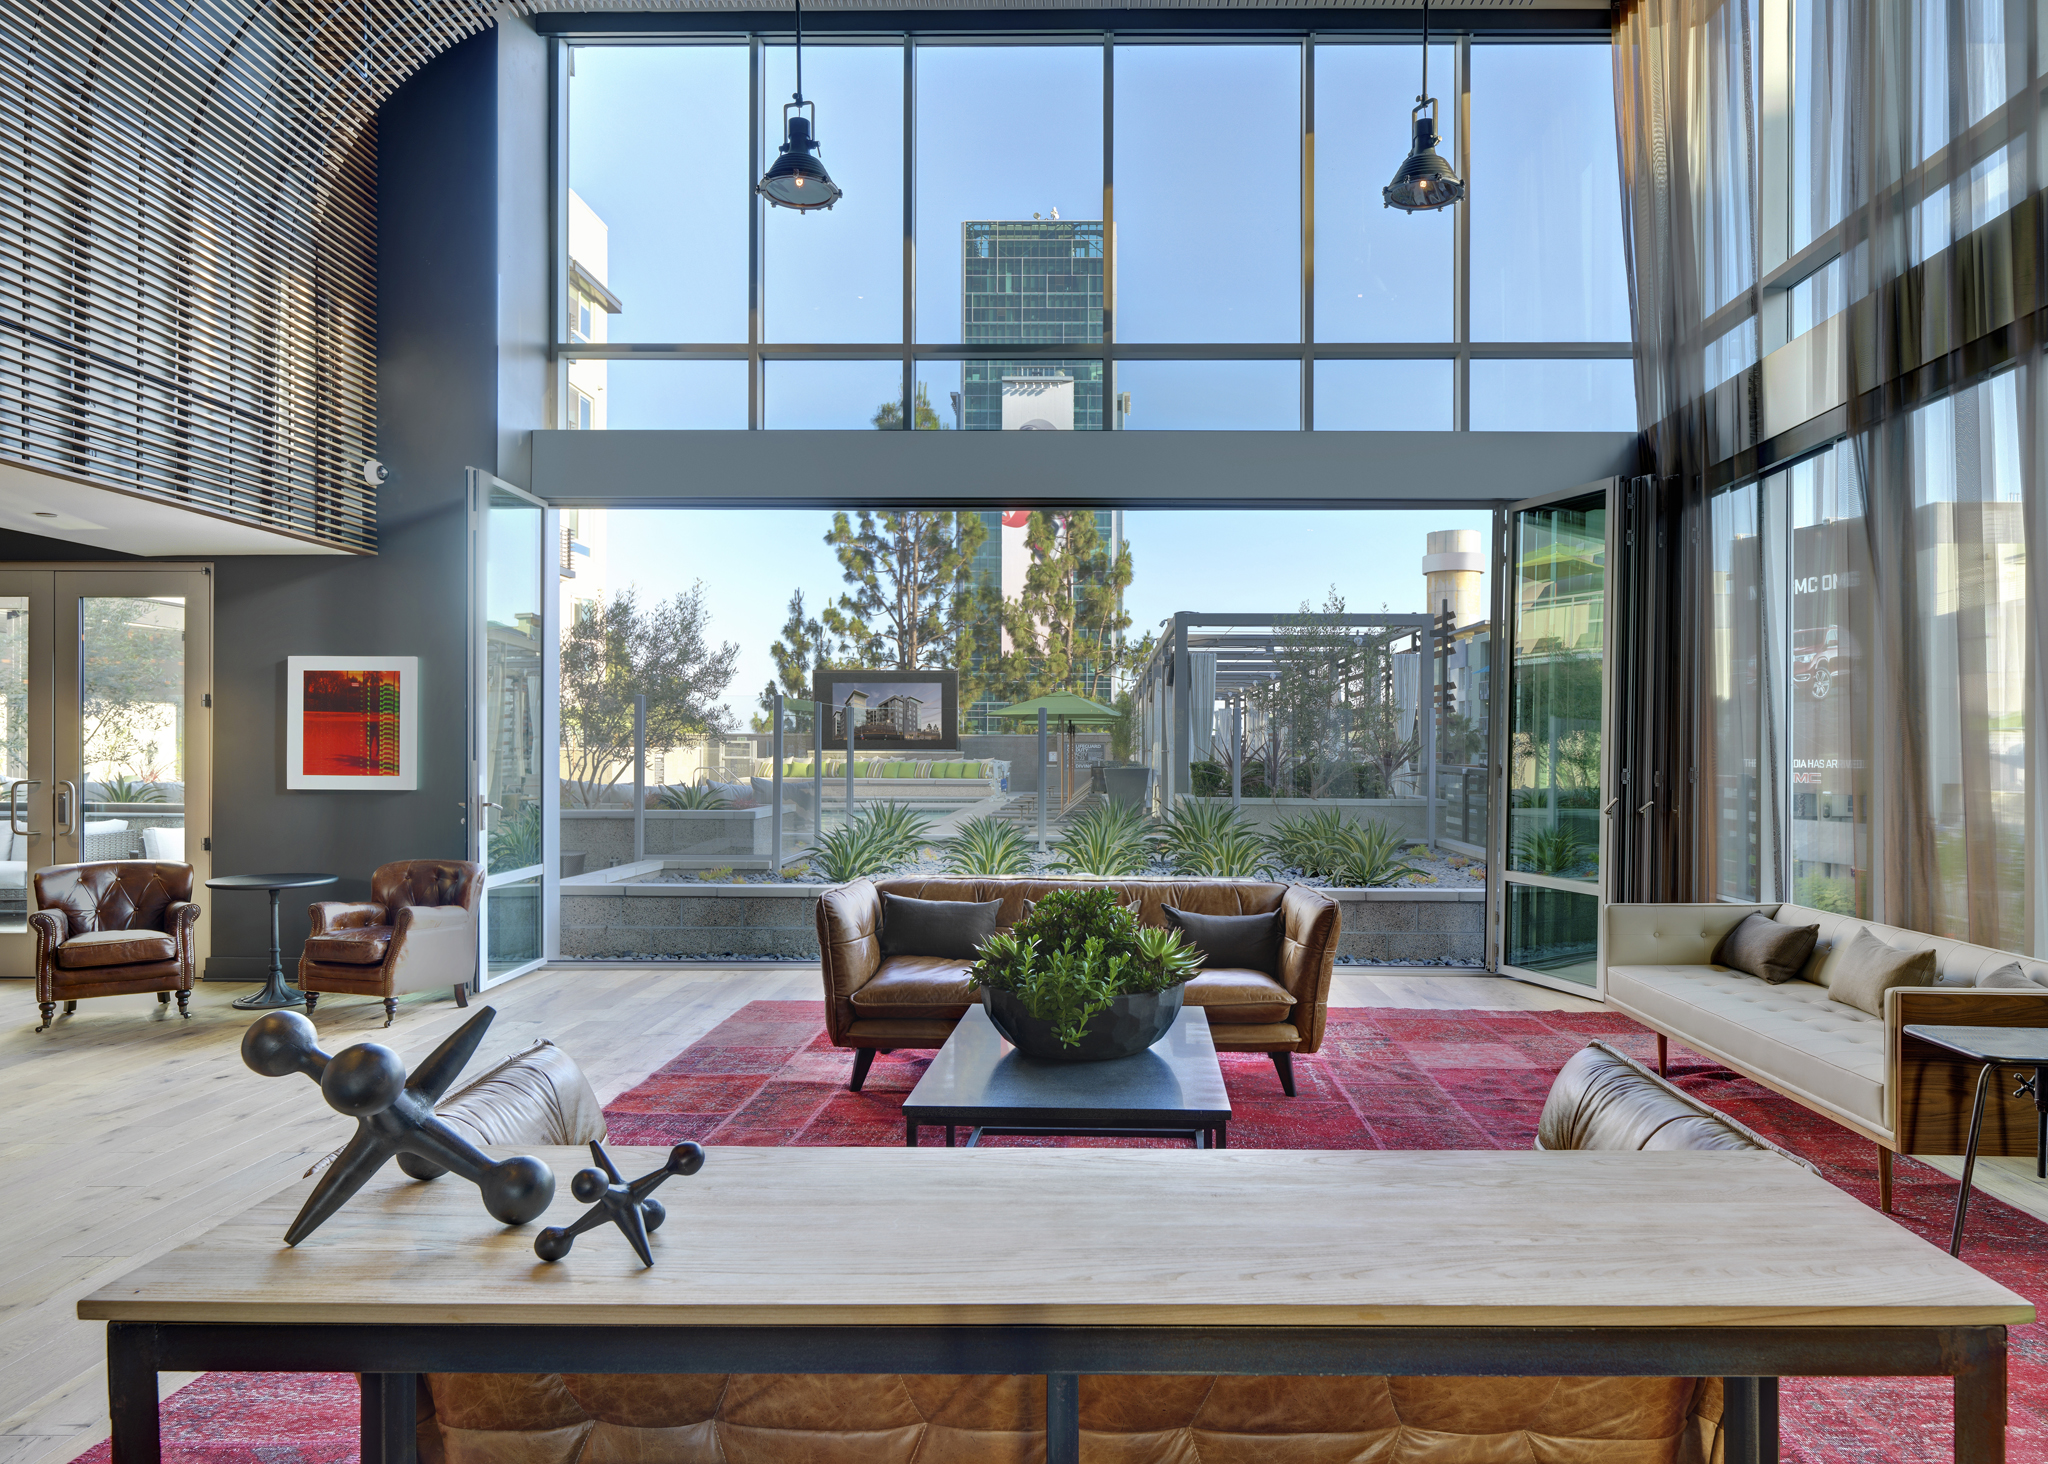 The_Camden_Hollywood_Apartments_The_Hub_Interior_Facing_Pool.jpg